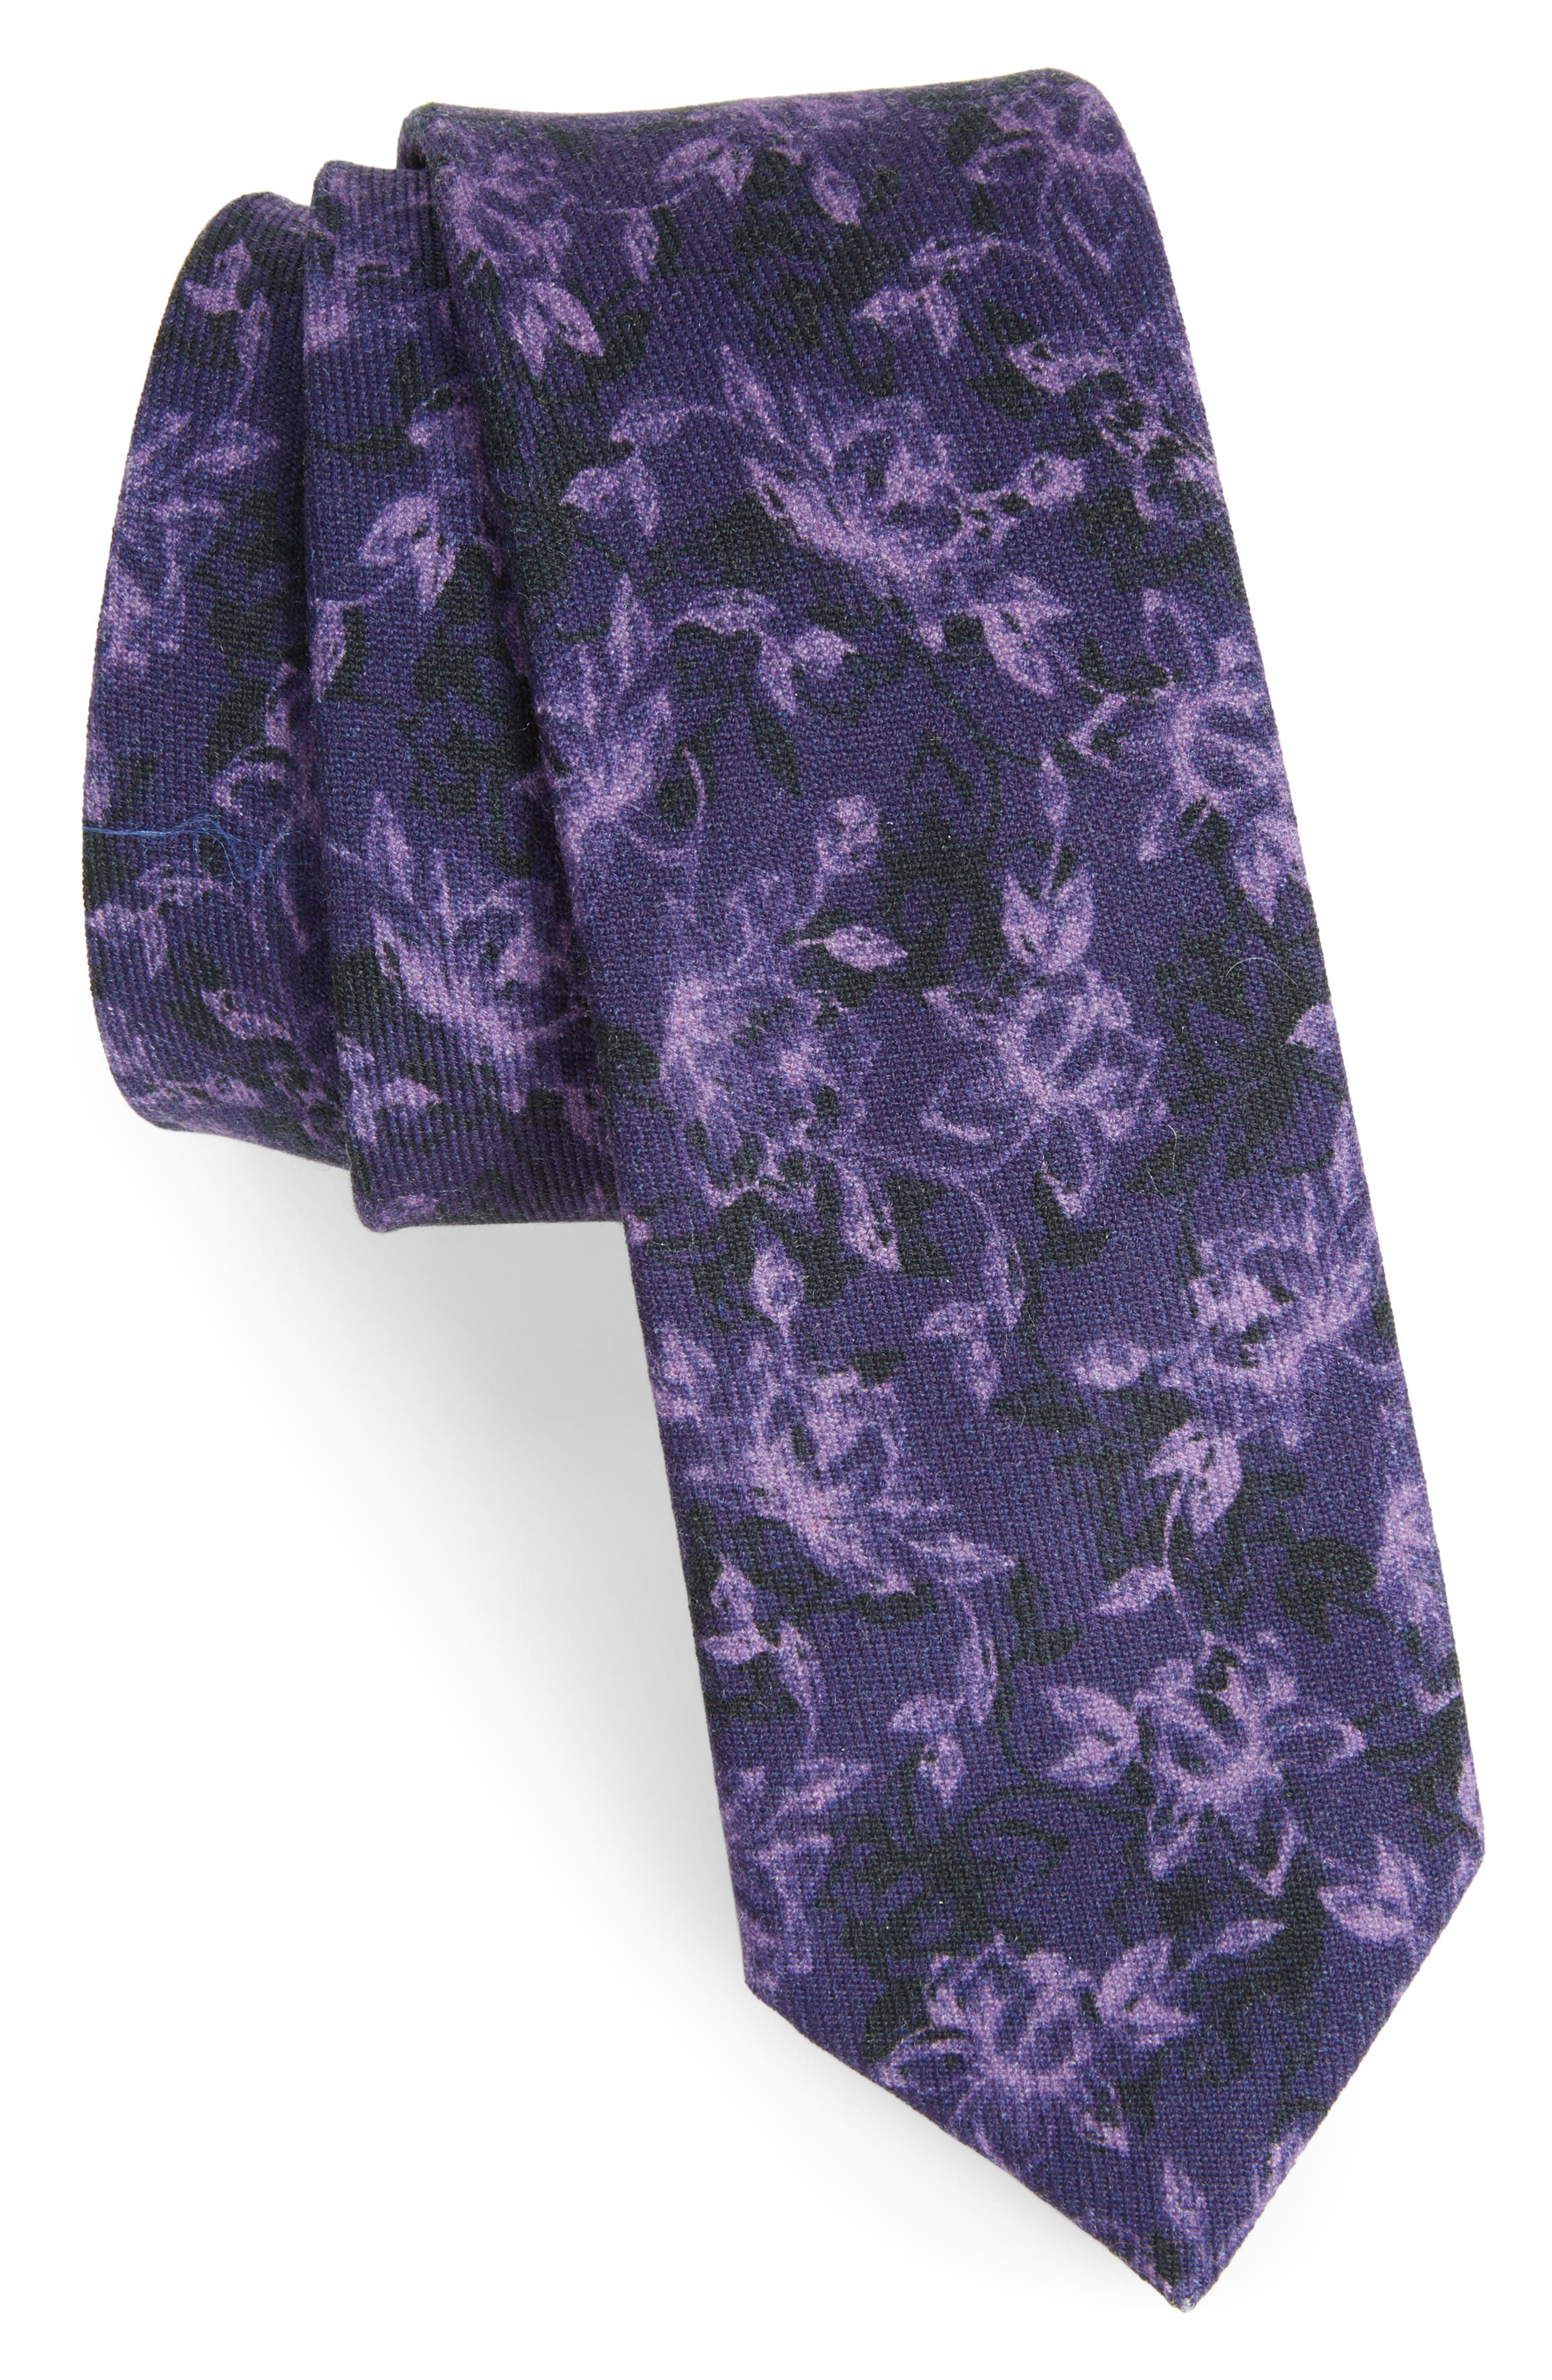 Main Image - The Tie Bar Floral Wool Tie